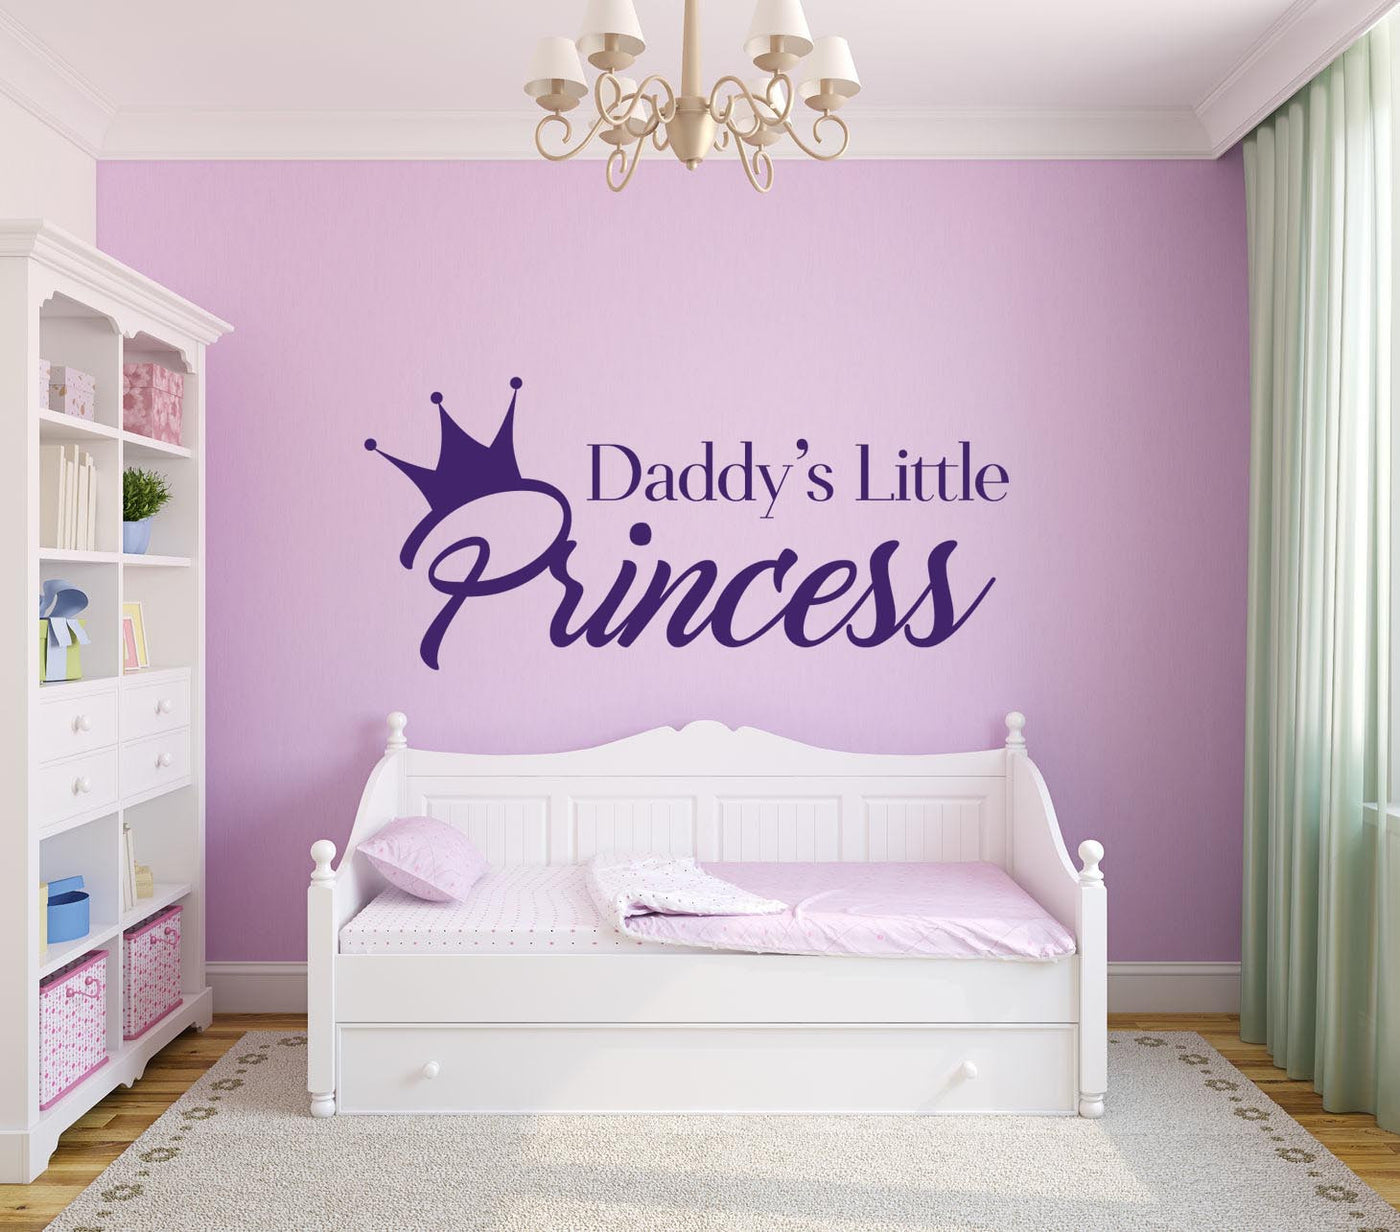 Daddys little princess wall decal canvas art rocks amipublicfo Gallery